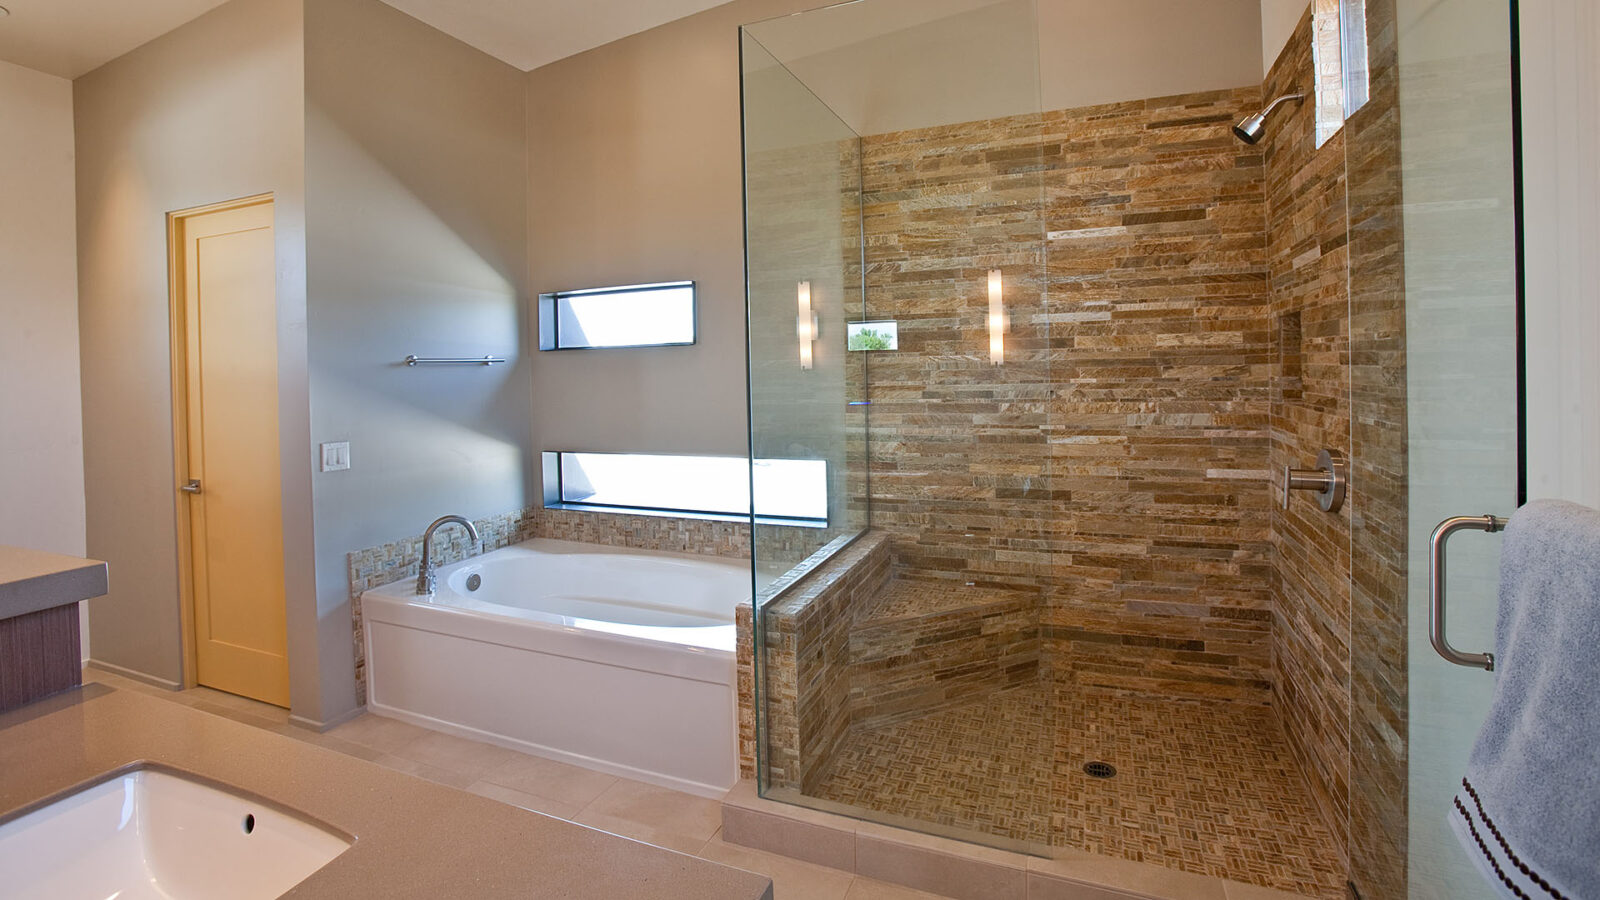 An Arcadian Mode designed bathroom with a shower and tub